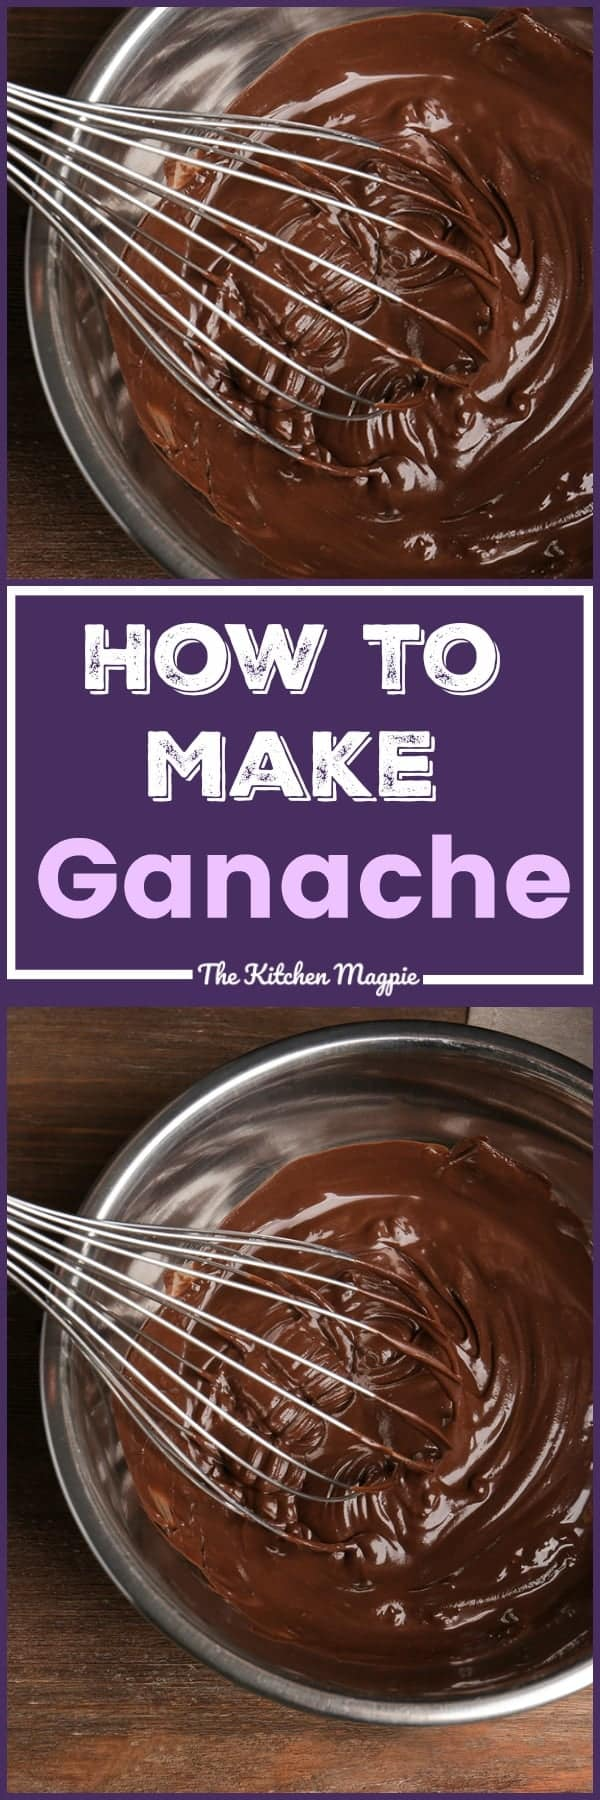 How To Make Ganache - The Kitchen Magpie